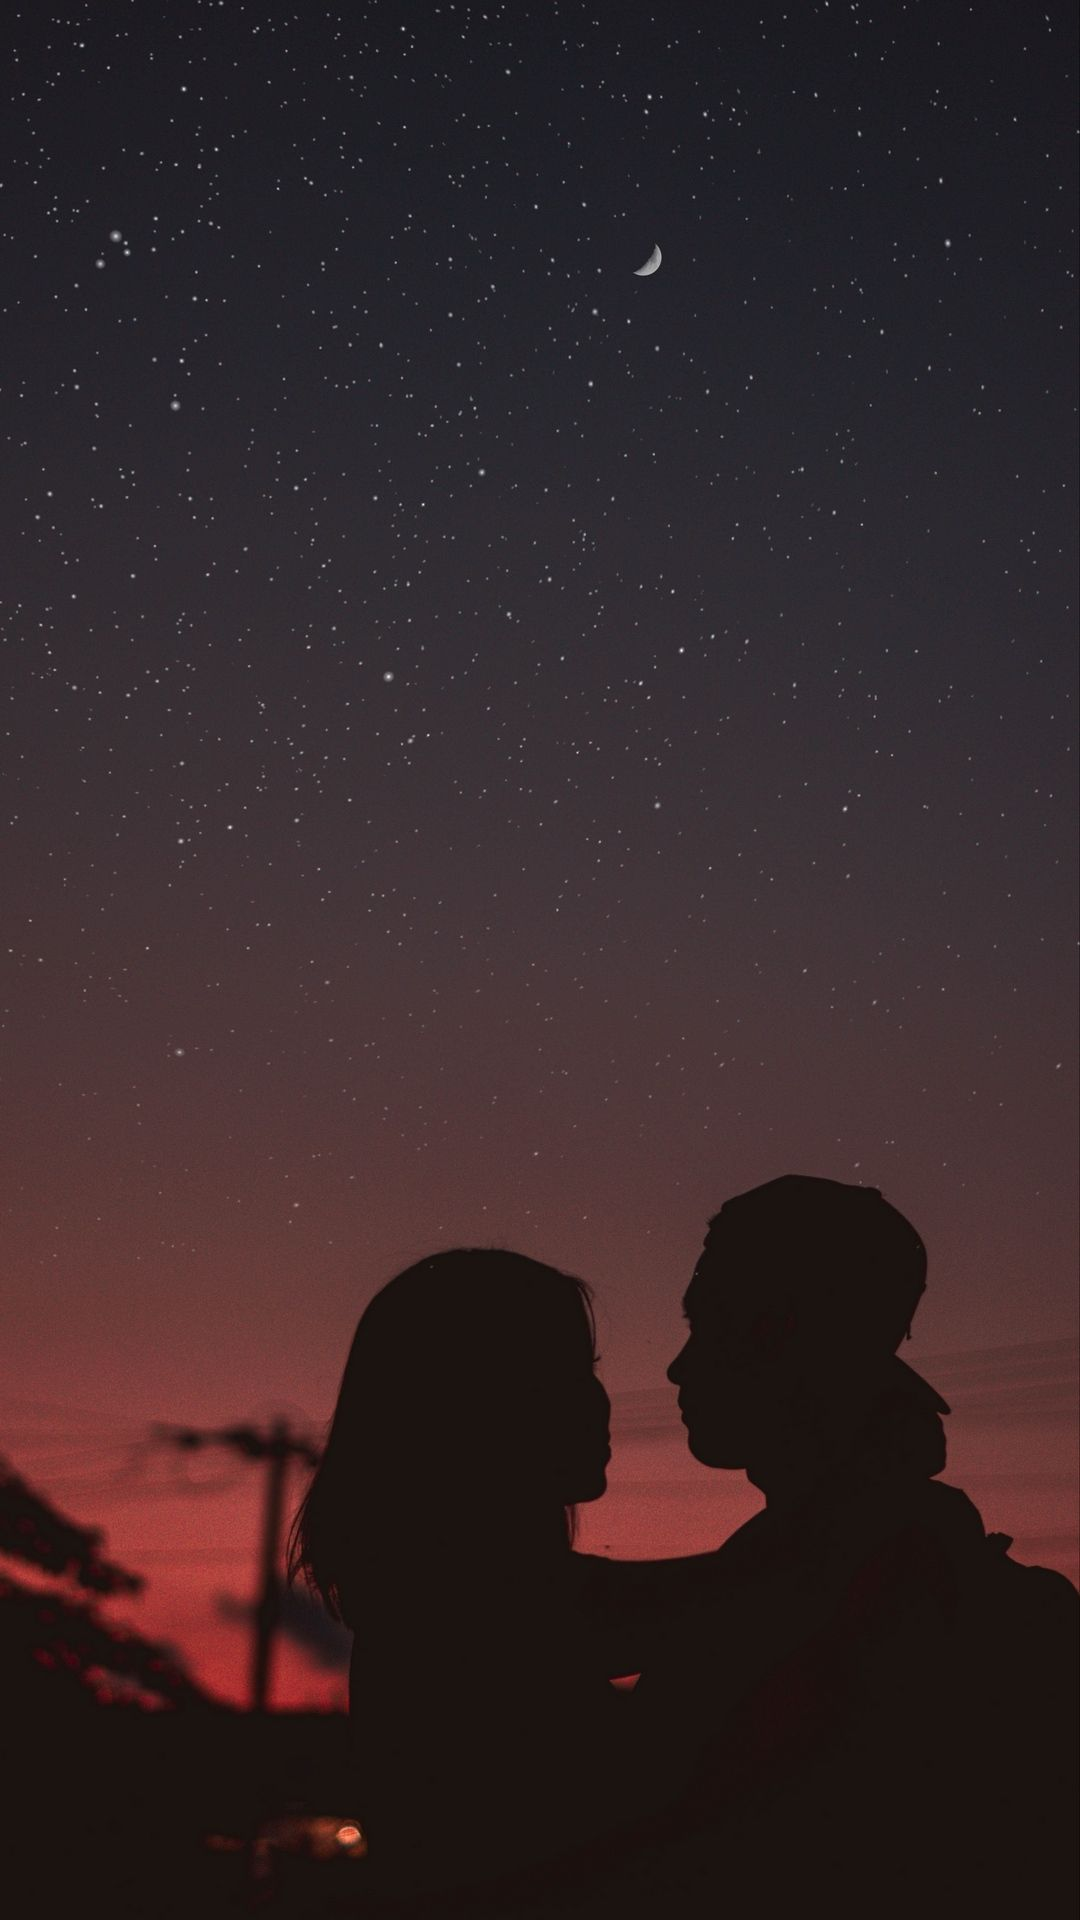 Download Wallpaper 1080x1920 Couple Silhouettes Hugs Night Starry Sky Samsung Galaxy S4 S5 Note Sony Xperia Z Starry Sky Galaxy Photos Iphone Wallpaper